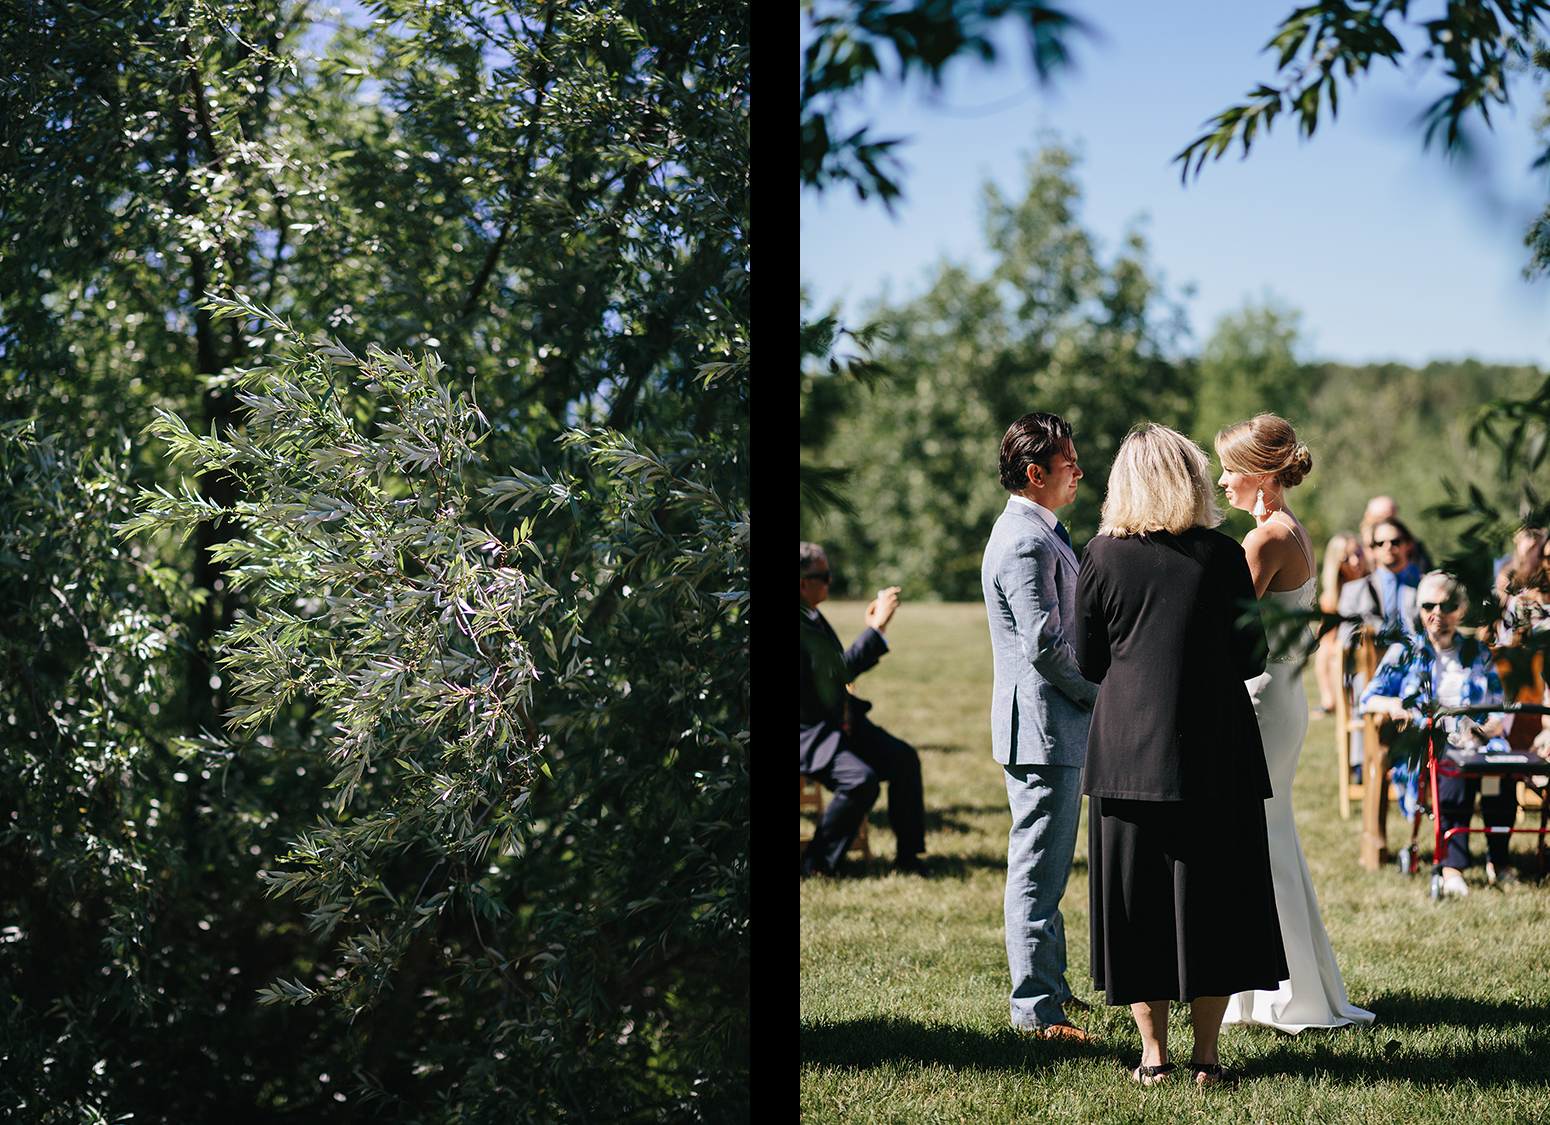 spread6-Best-Documentary-photojournalistic-wedding-photographers-Toronto-Ontario-Canada-Rural-Country-House-Backyard-Wedding-Ceremony-Vintage-aesthetic-bride-and-groom-saying-vows-under-willow-tree-at-childhood-home.jpg